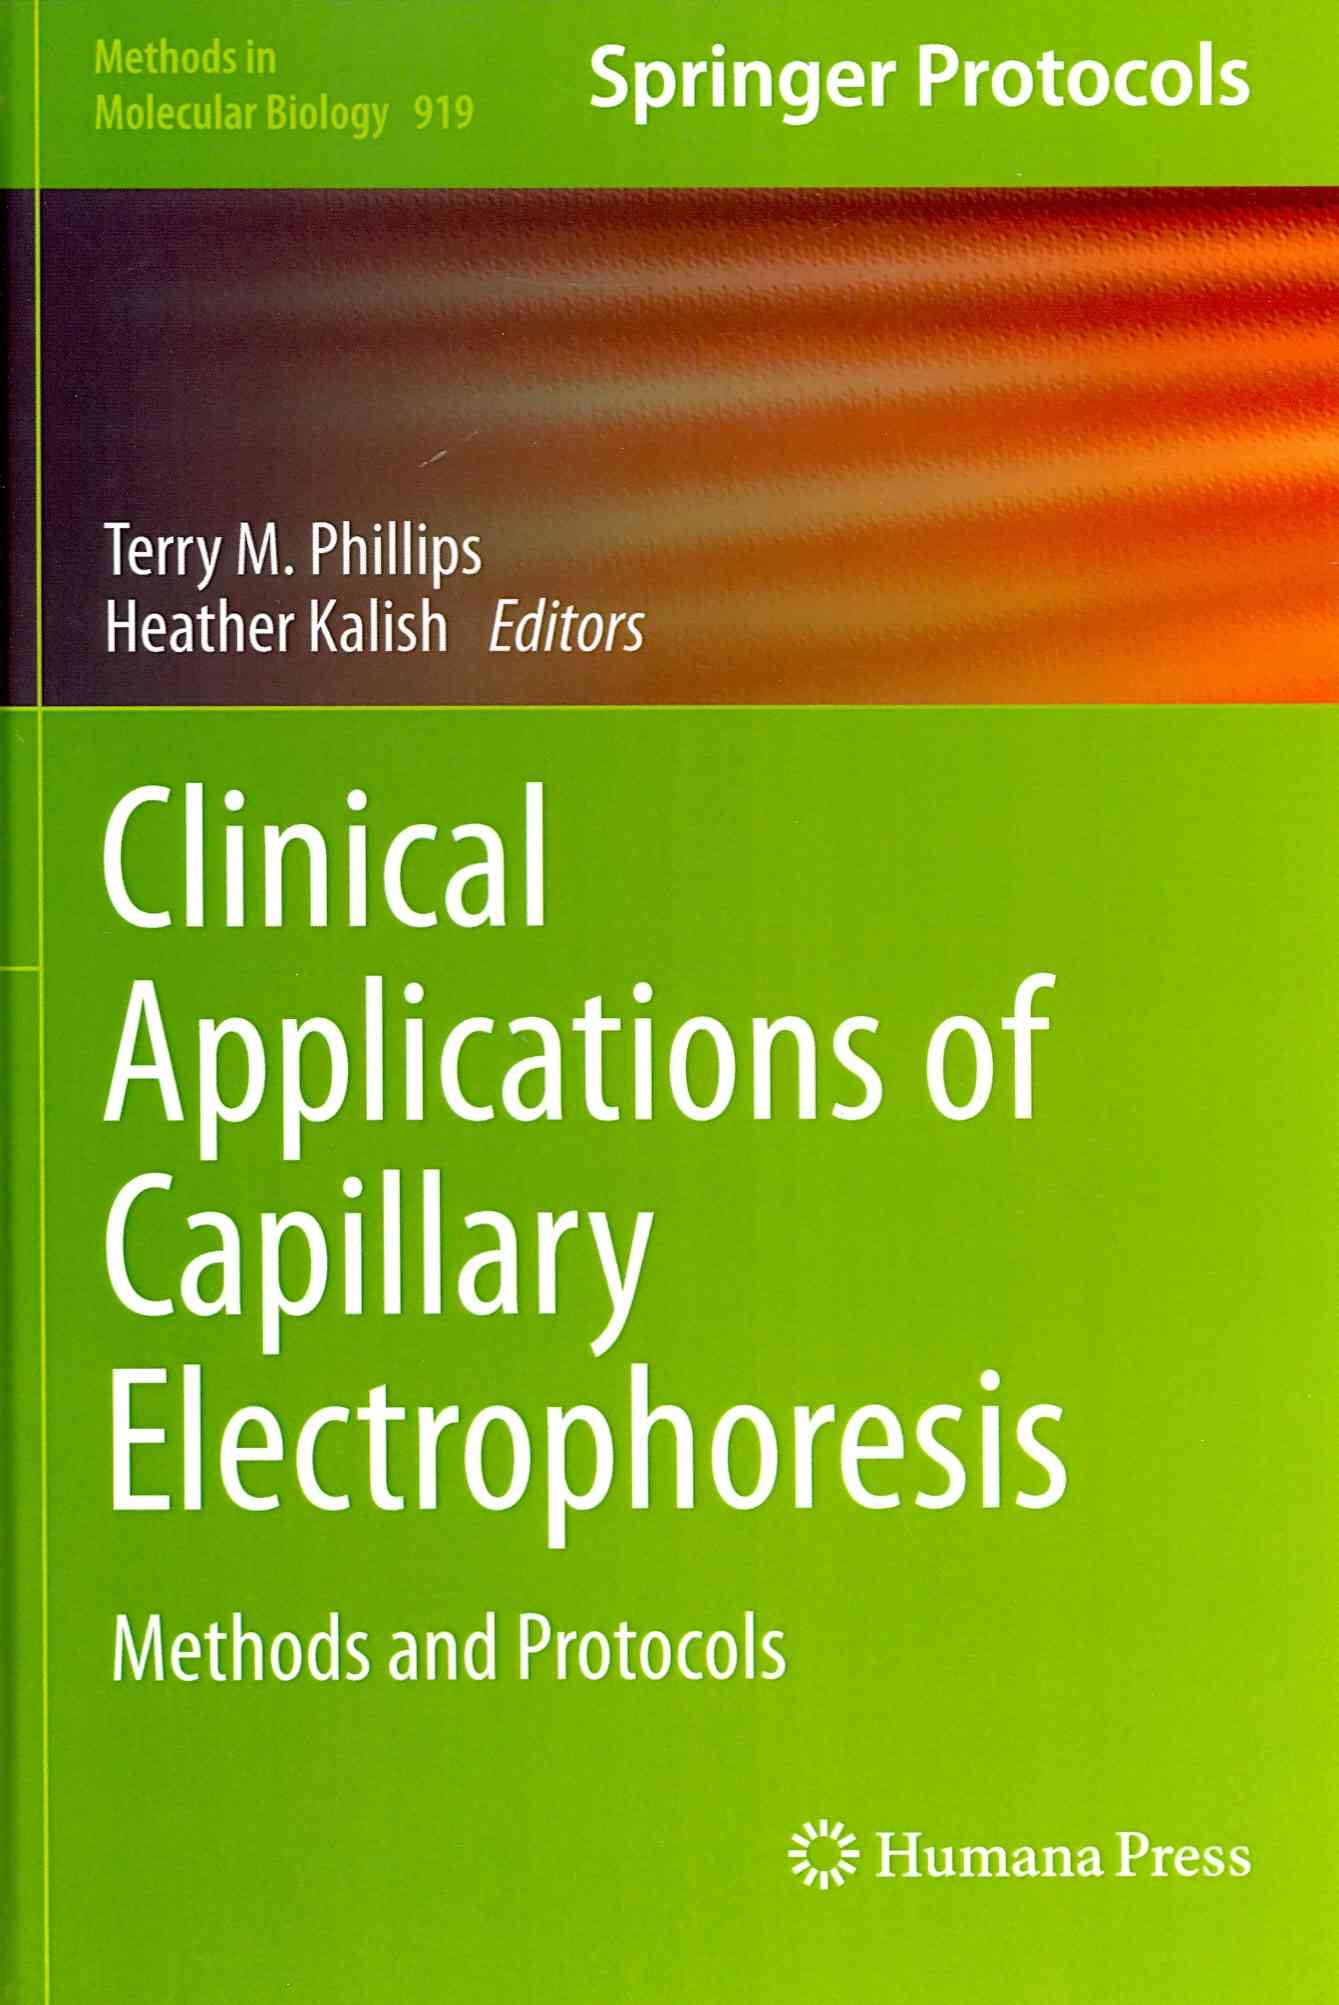 Clinical Applications of Capillary Electrophoresis By Phillips, Terry M. (EDT)/ Kalish, Heather (EDT)